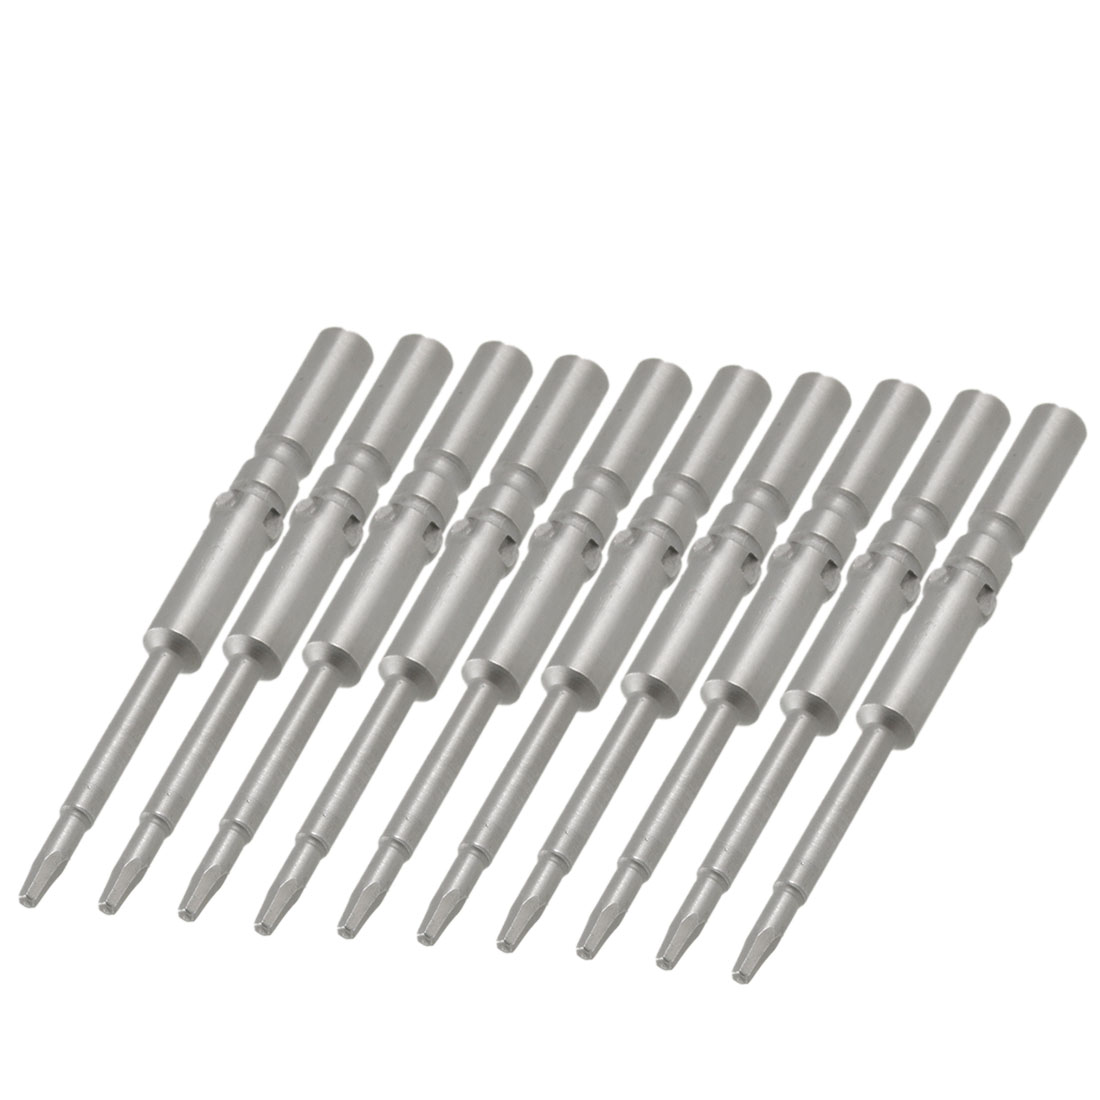 10 Pcs 5mm Round Shank Magnetic 2.5mm Tip Hex Screwdriver Bits Tool